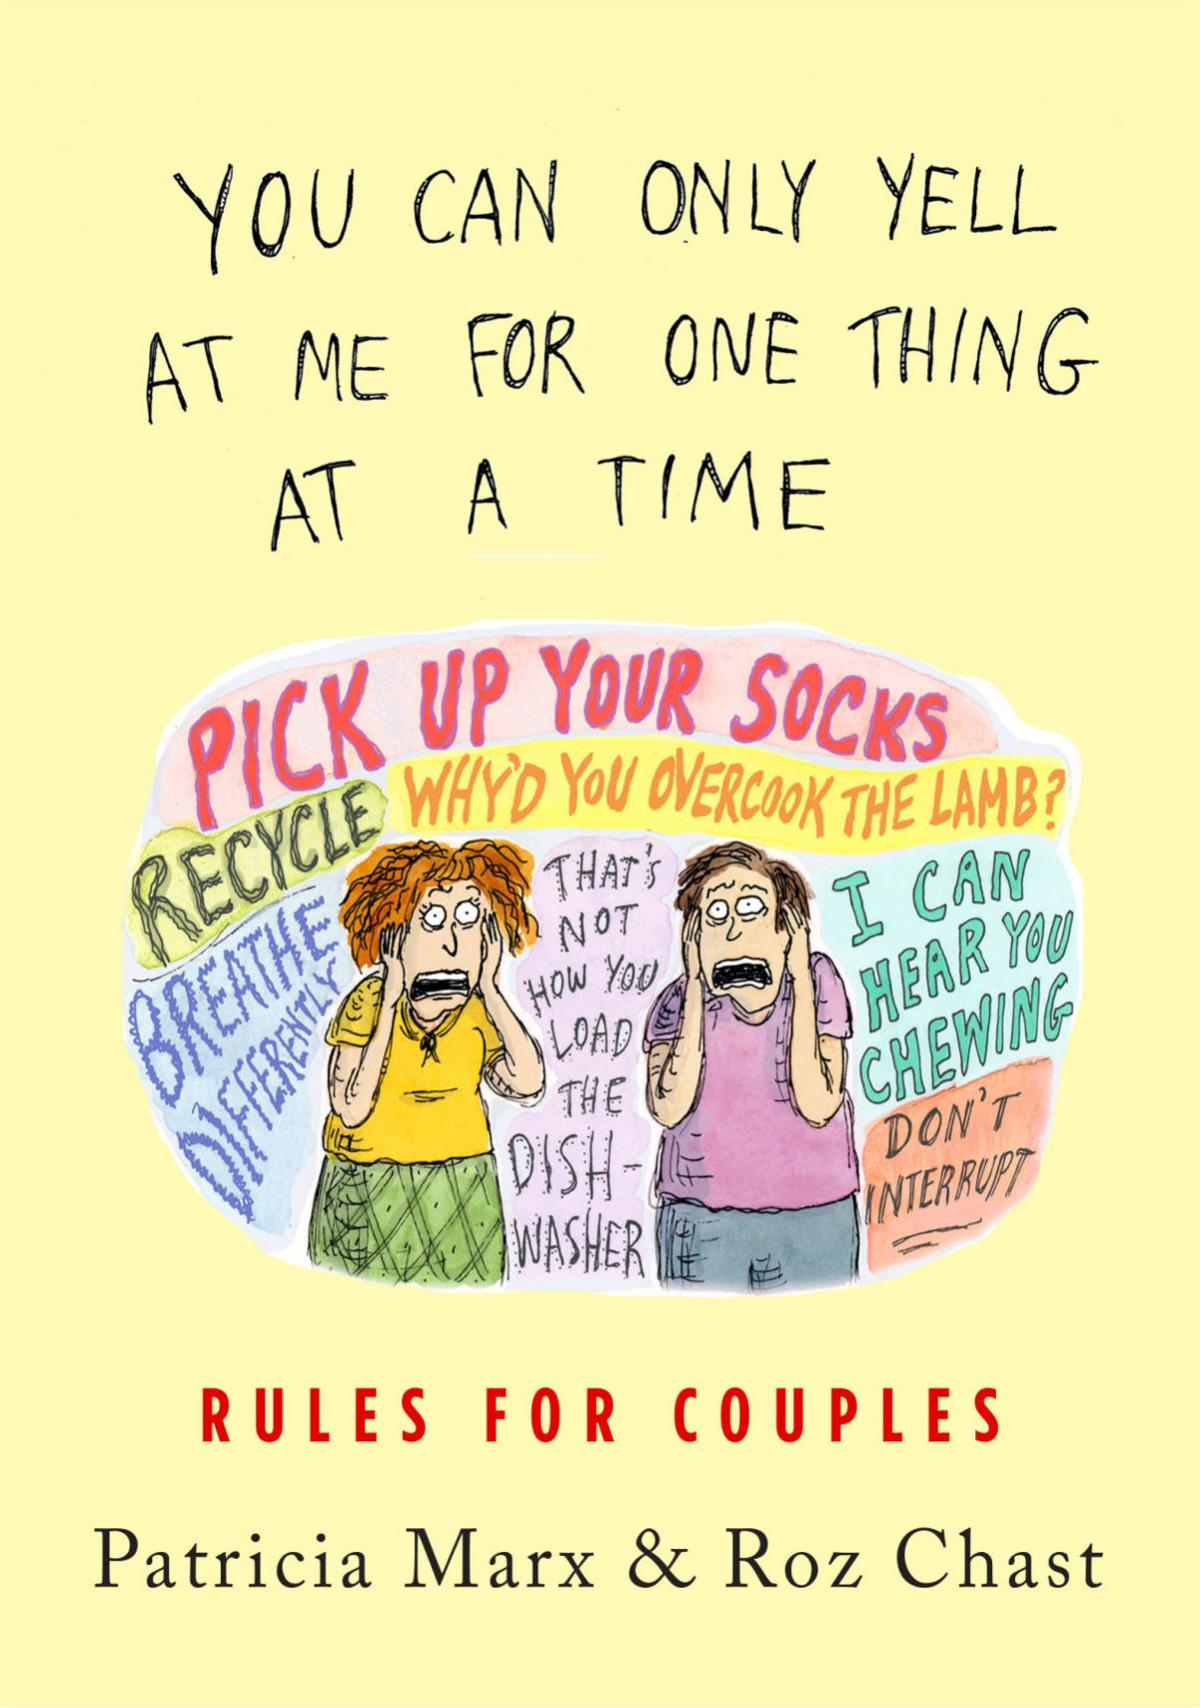 Rules for couples